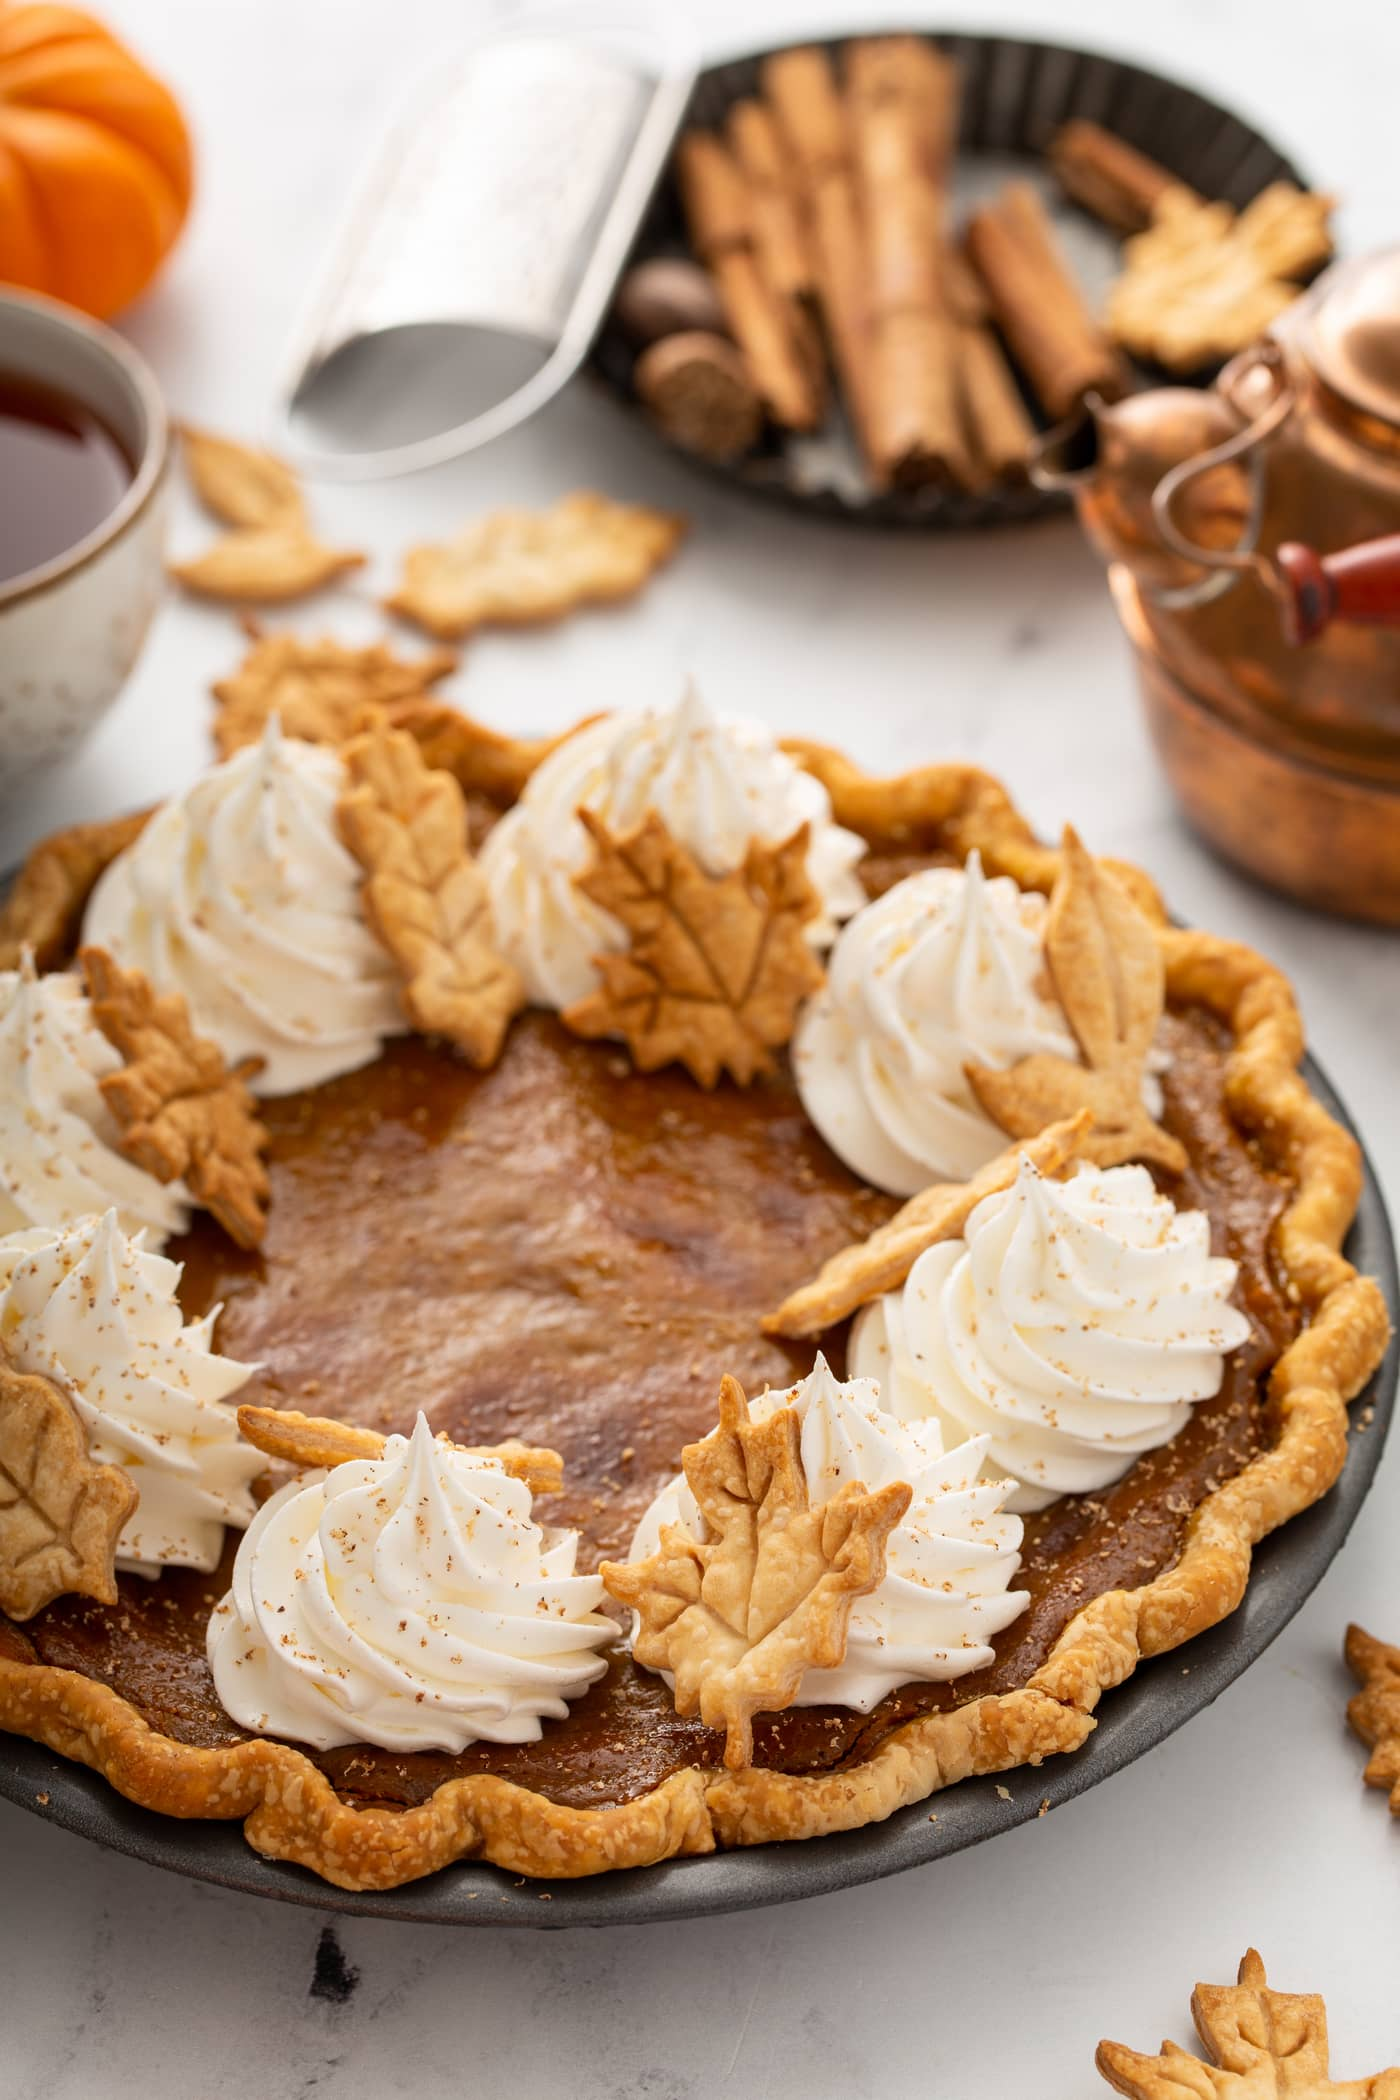 A whole pumpkin pie topped with piped whipped cream and pie crust leaves.